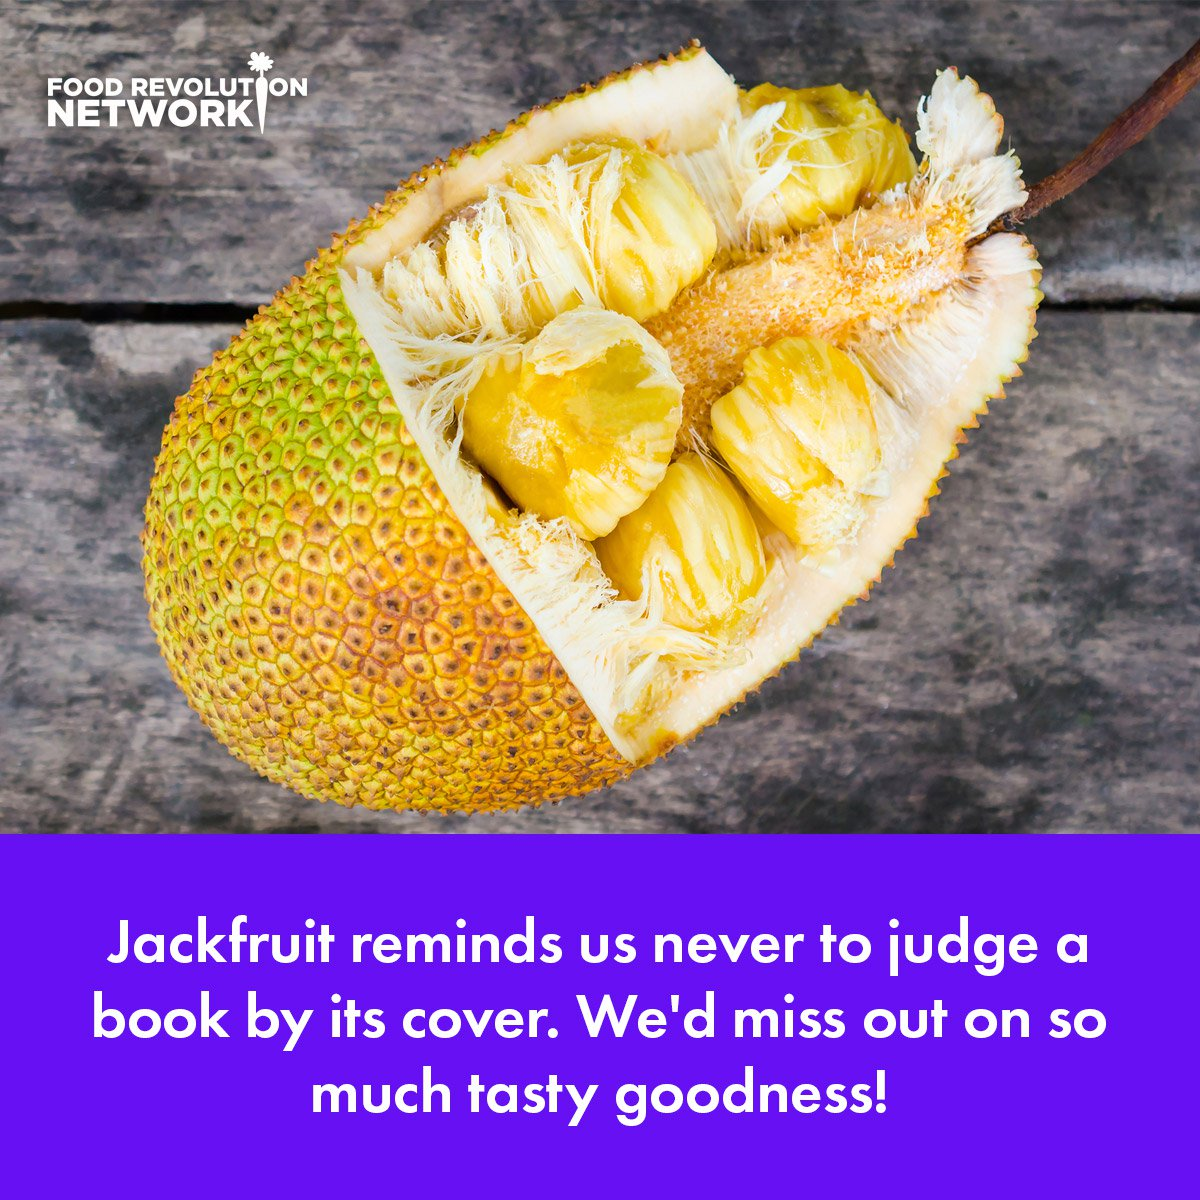 Jackfruit reminds us never to judge a book by its cover. We'd miss out in so much tasty goodness!